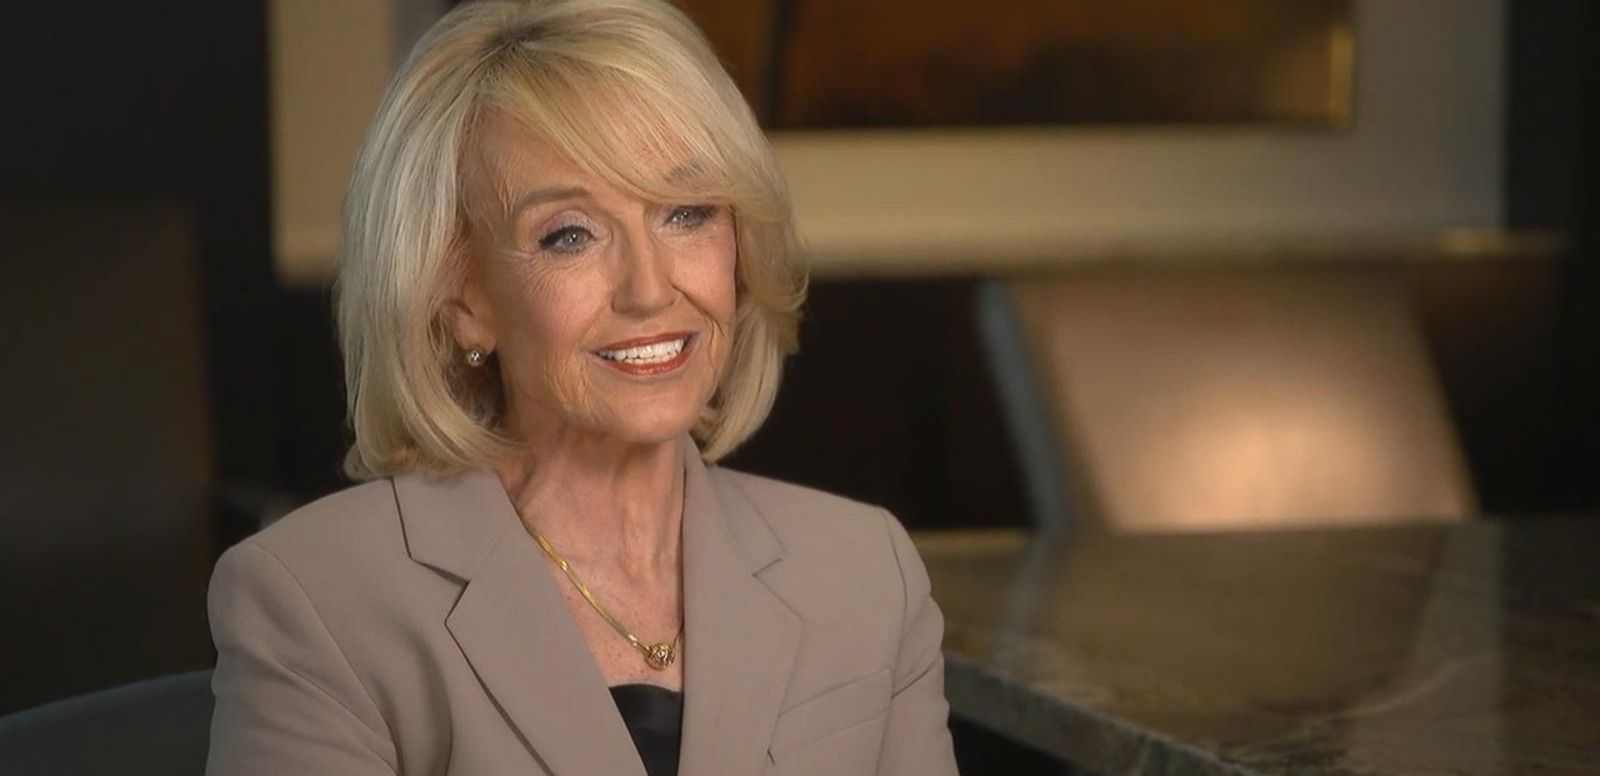 VIDEO: Former Arizona Governor Speaks Out Over Unflattering Photos